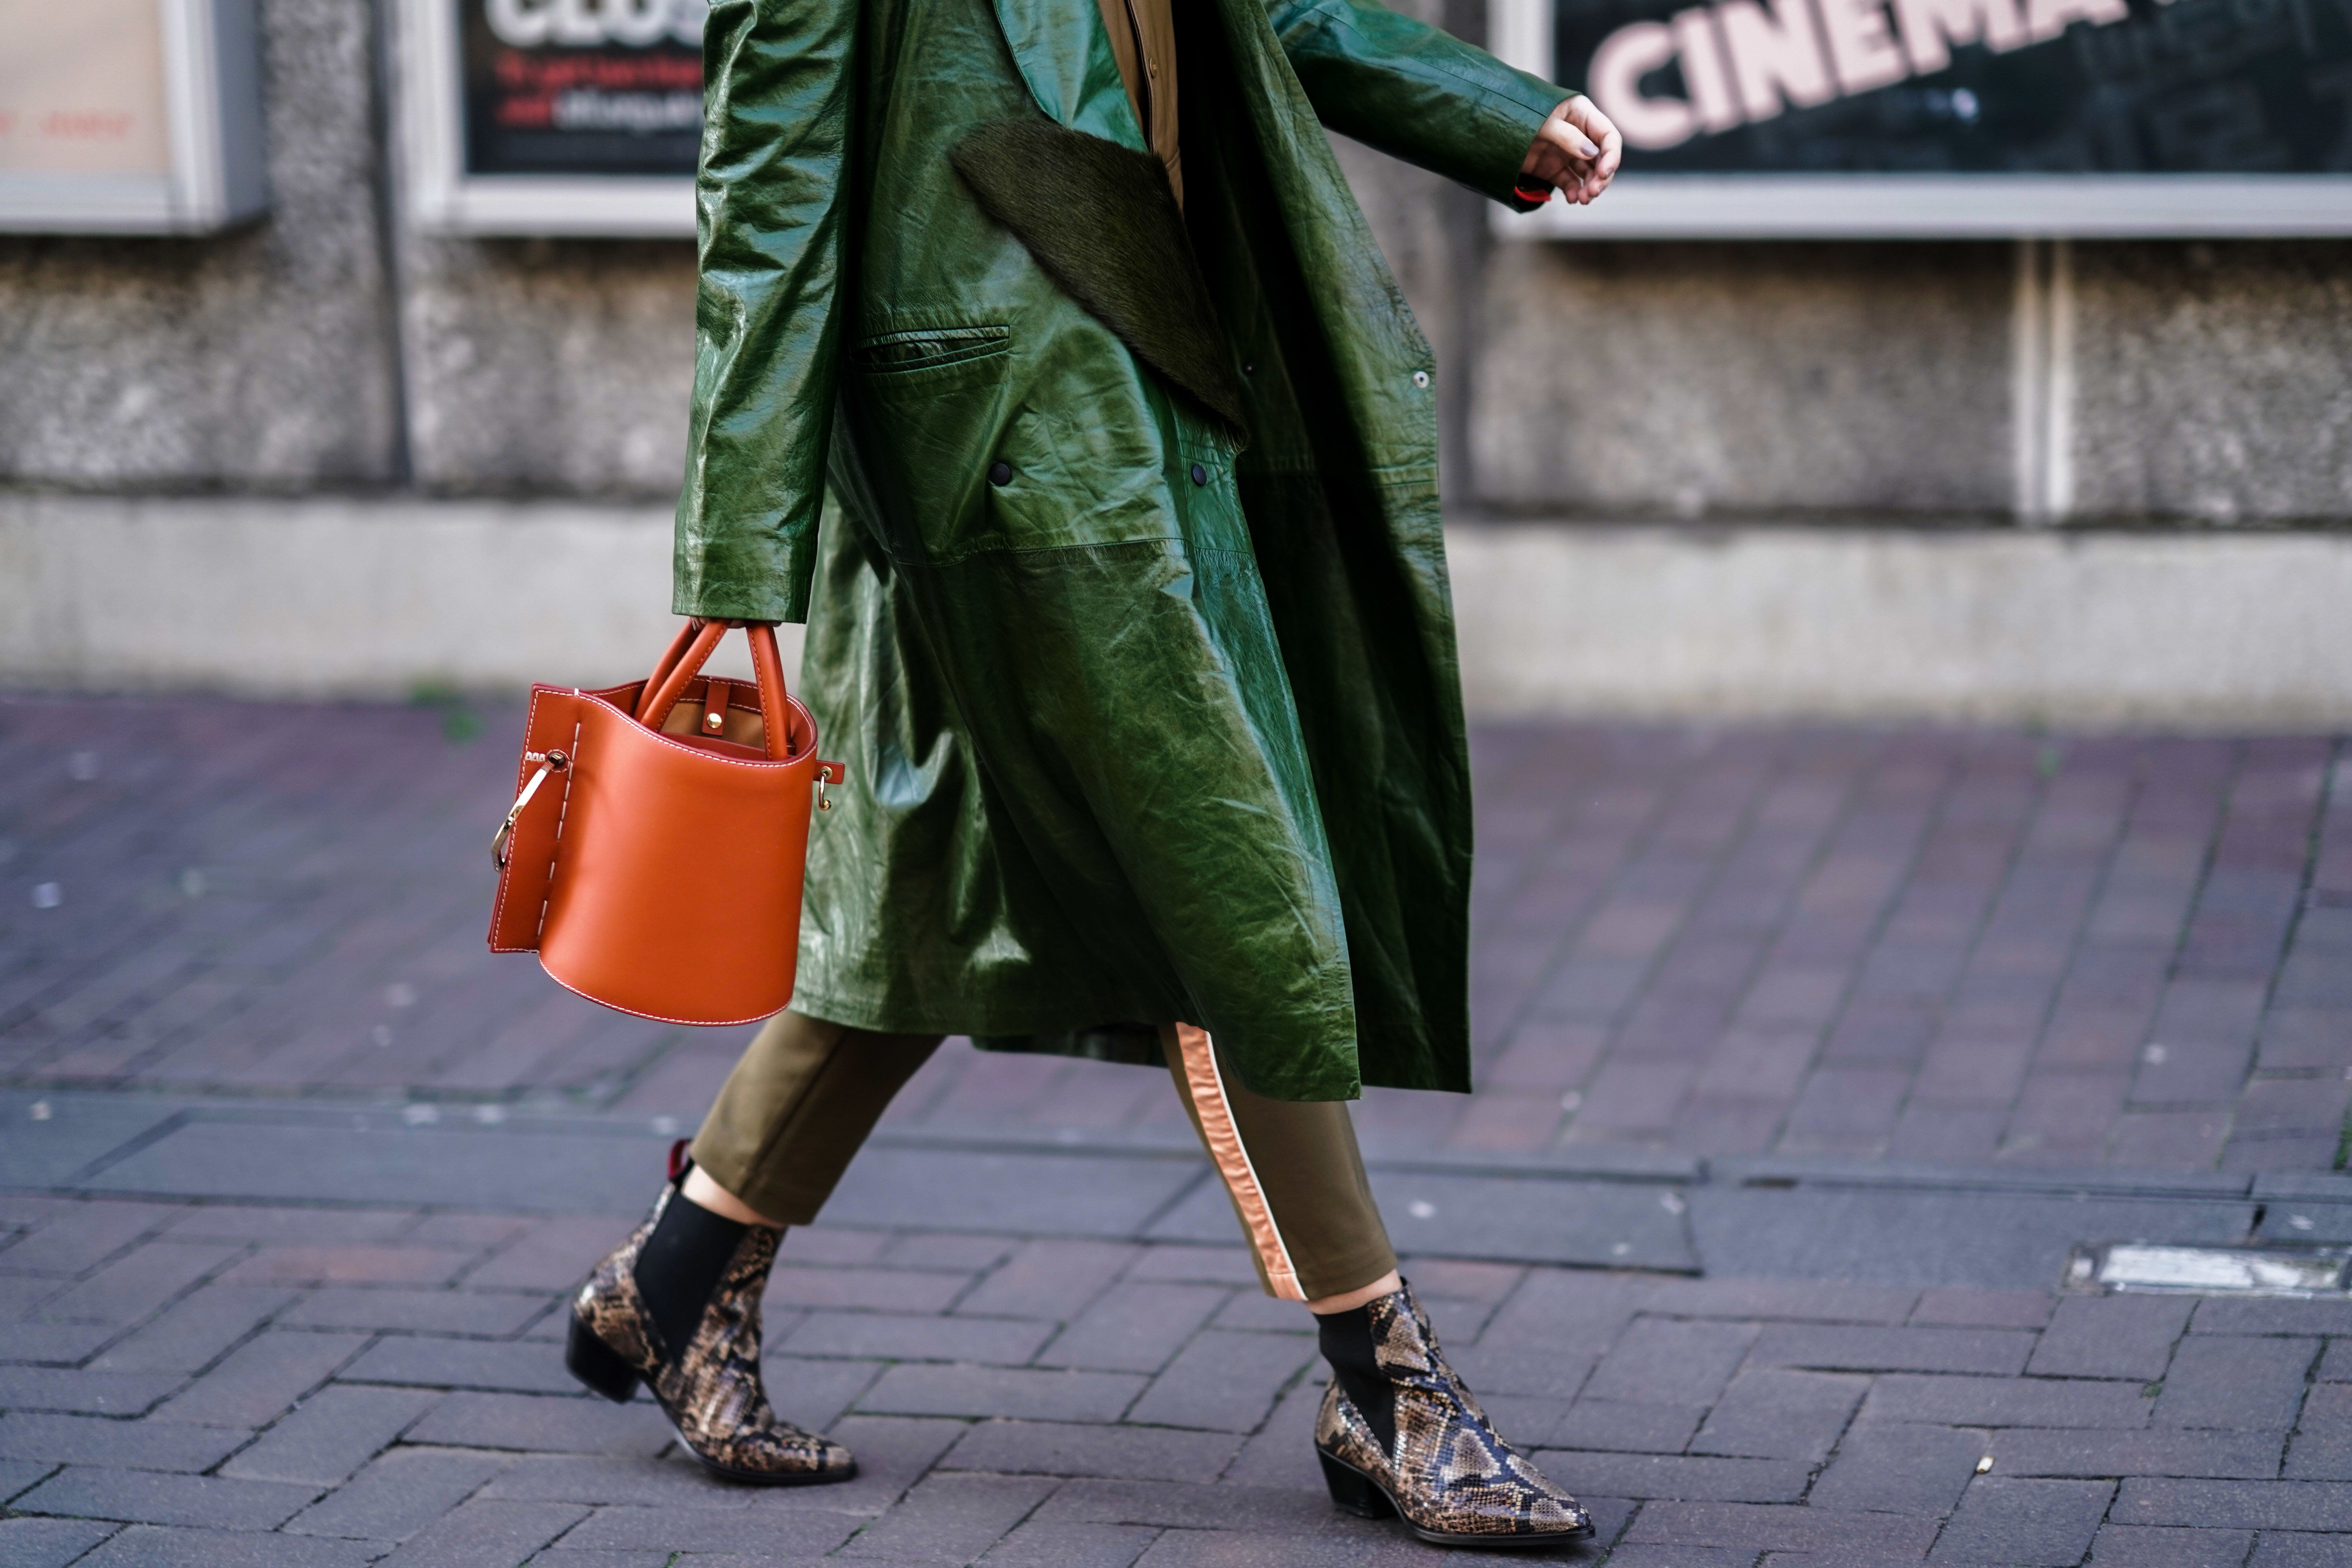 LONDON, ENGLAND - FEBRUARY 17: Andreea Cristea wears a green leather trench coat, a brown shirt, an orange bag, snake print shoes, during London Fashion Week February 2019 on February 17, 2019 in London, England. (Photo by Edward Berthelot/Getty Images)